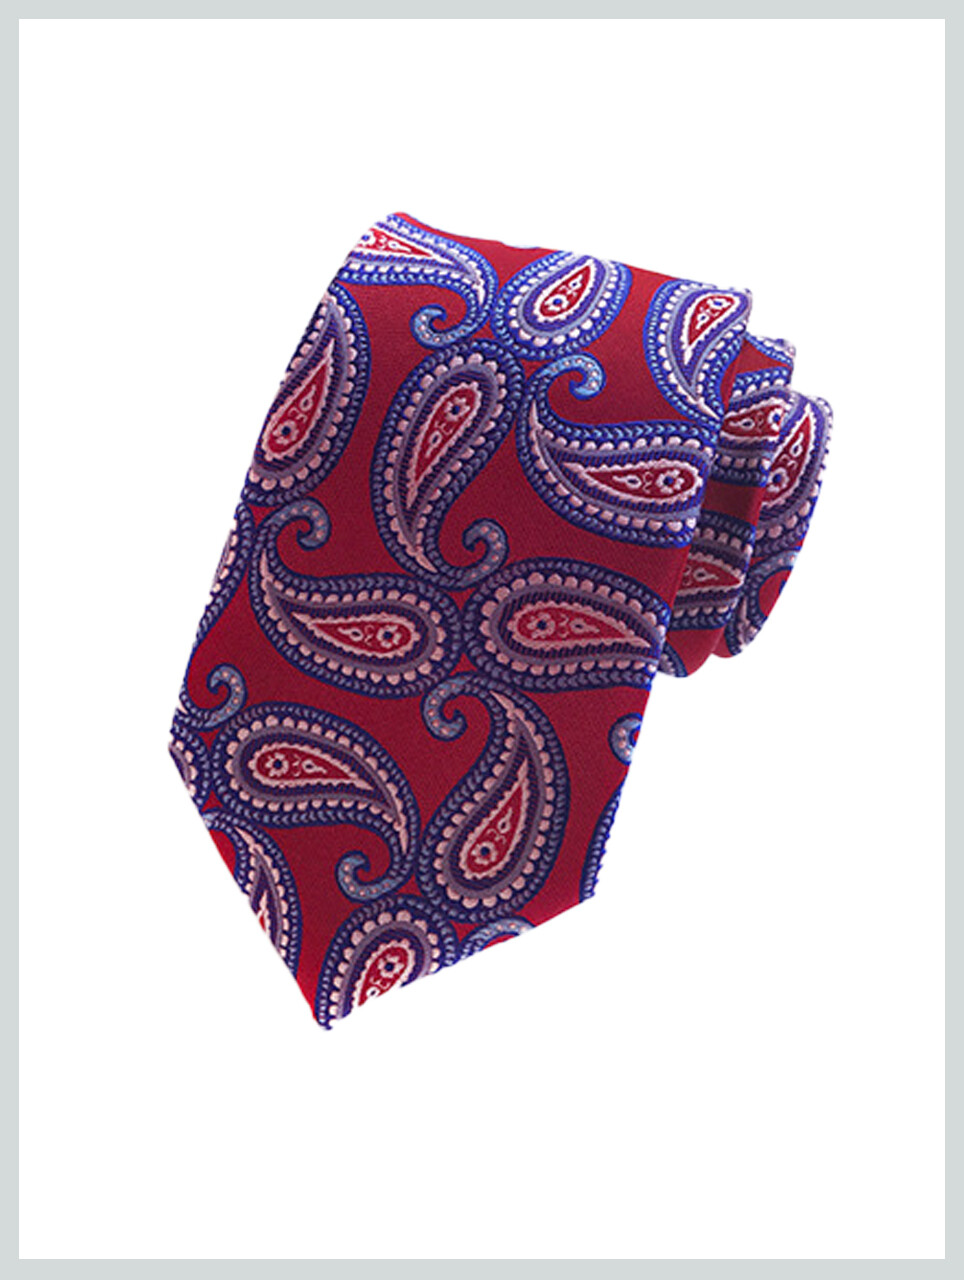 Knitted Tie | Red Blue Paisley Tie